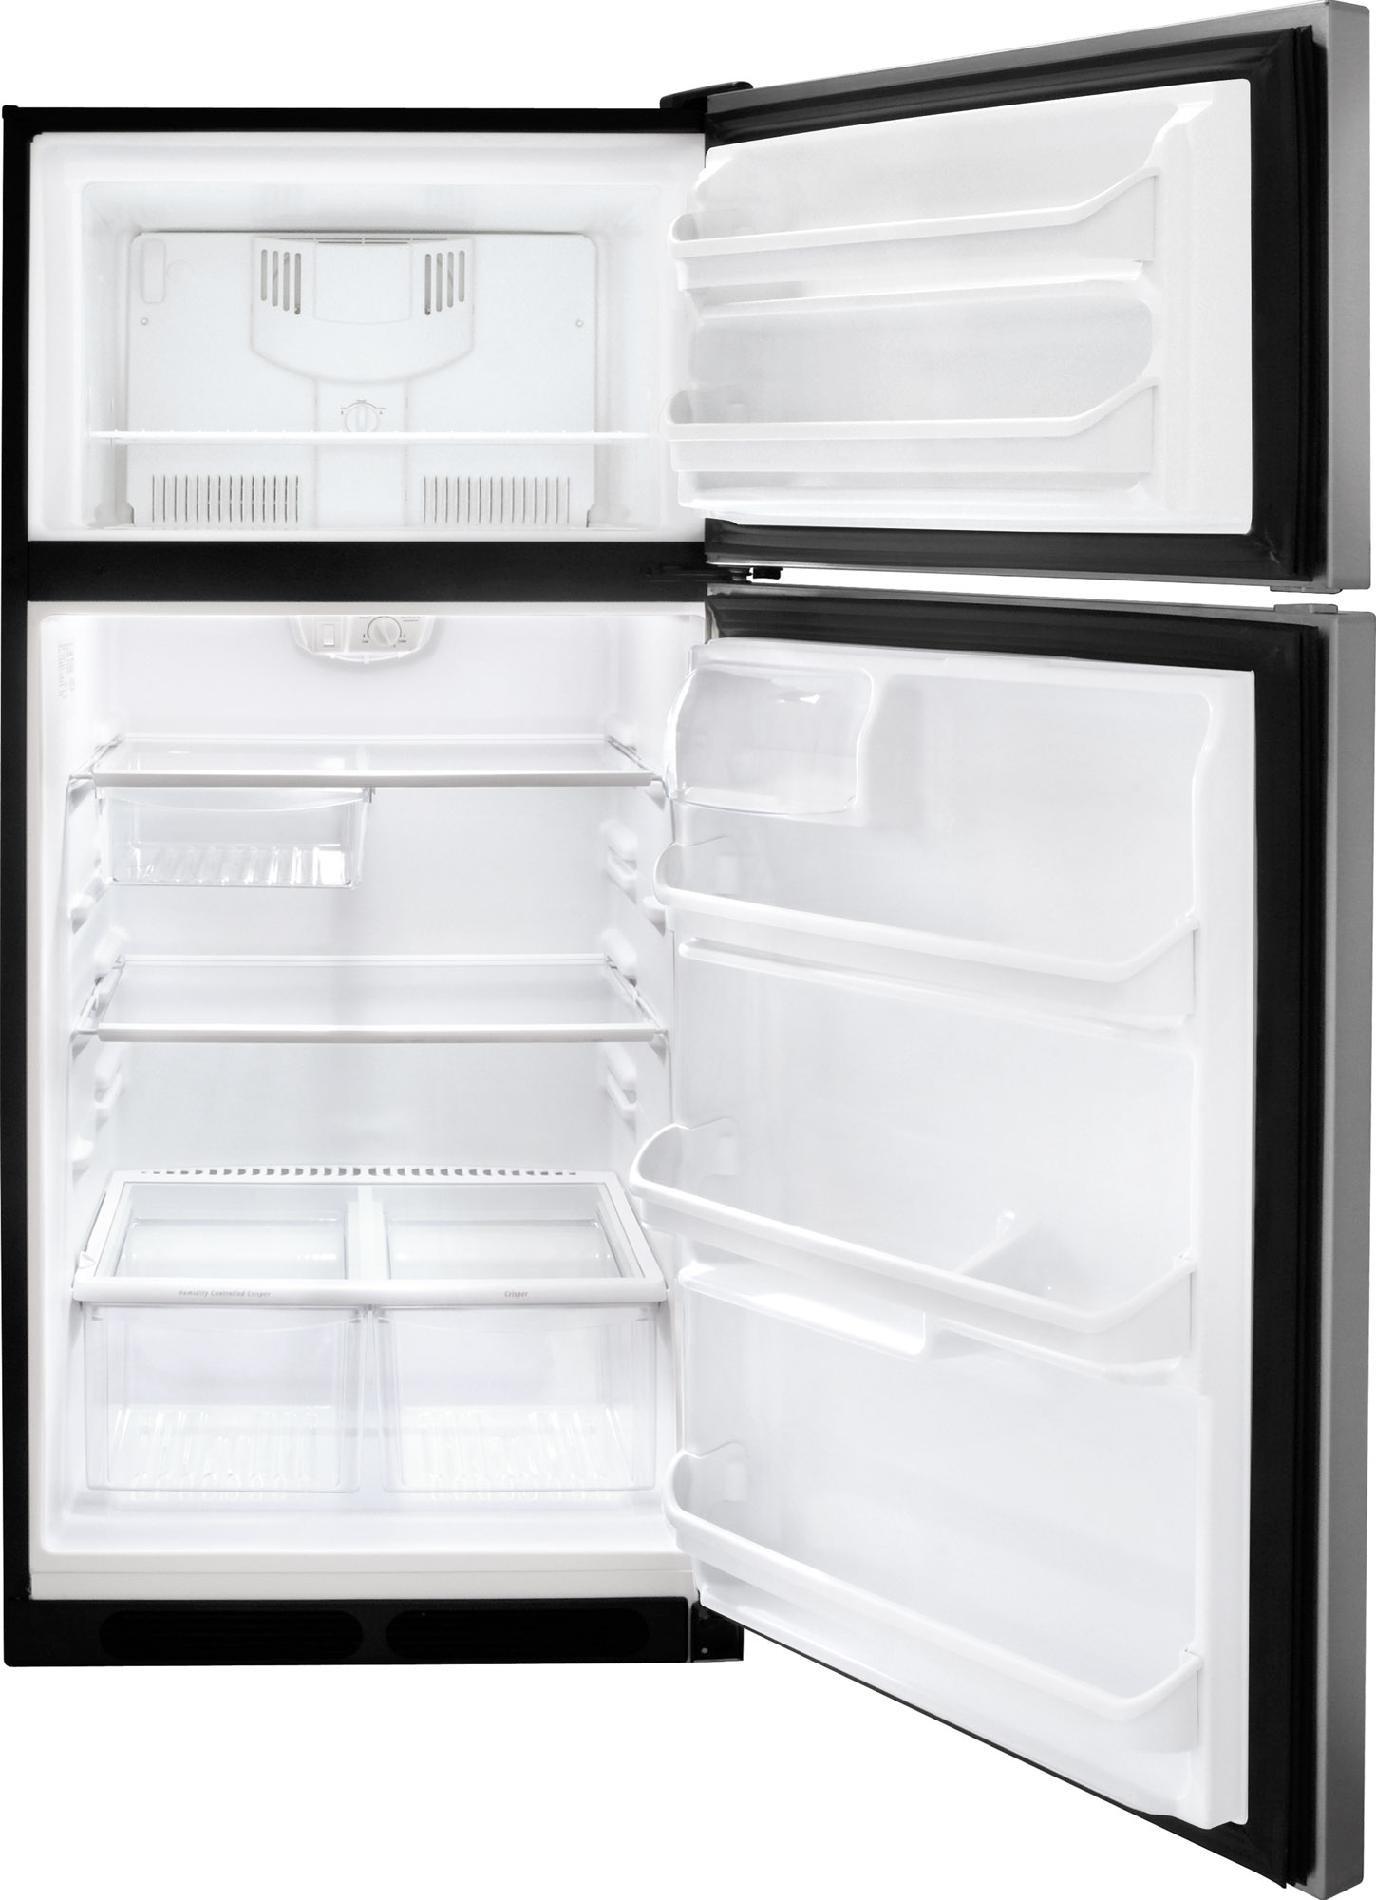 Frigidaire 18.2 cu. ft. Top Freezer Refrigerator - Stainless Steel